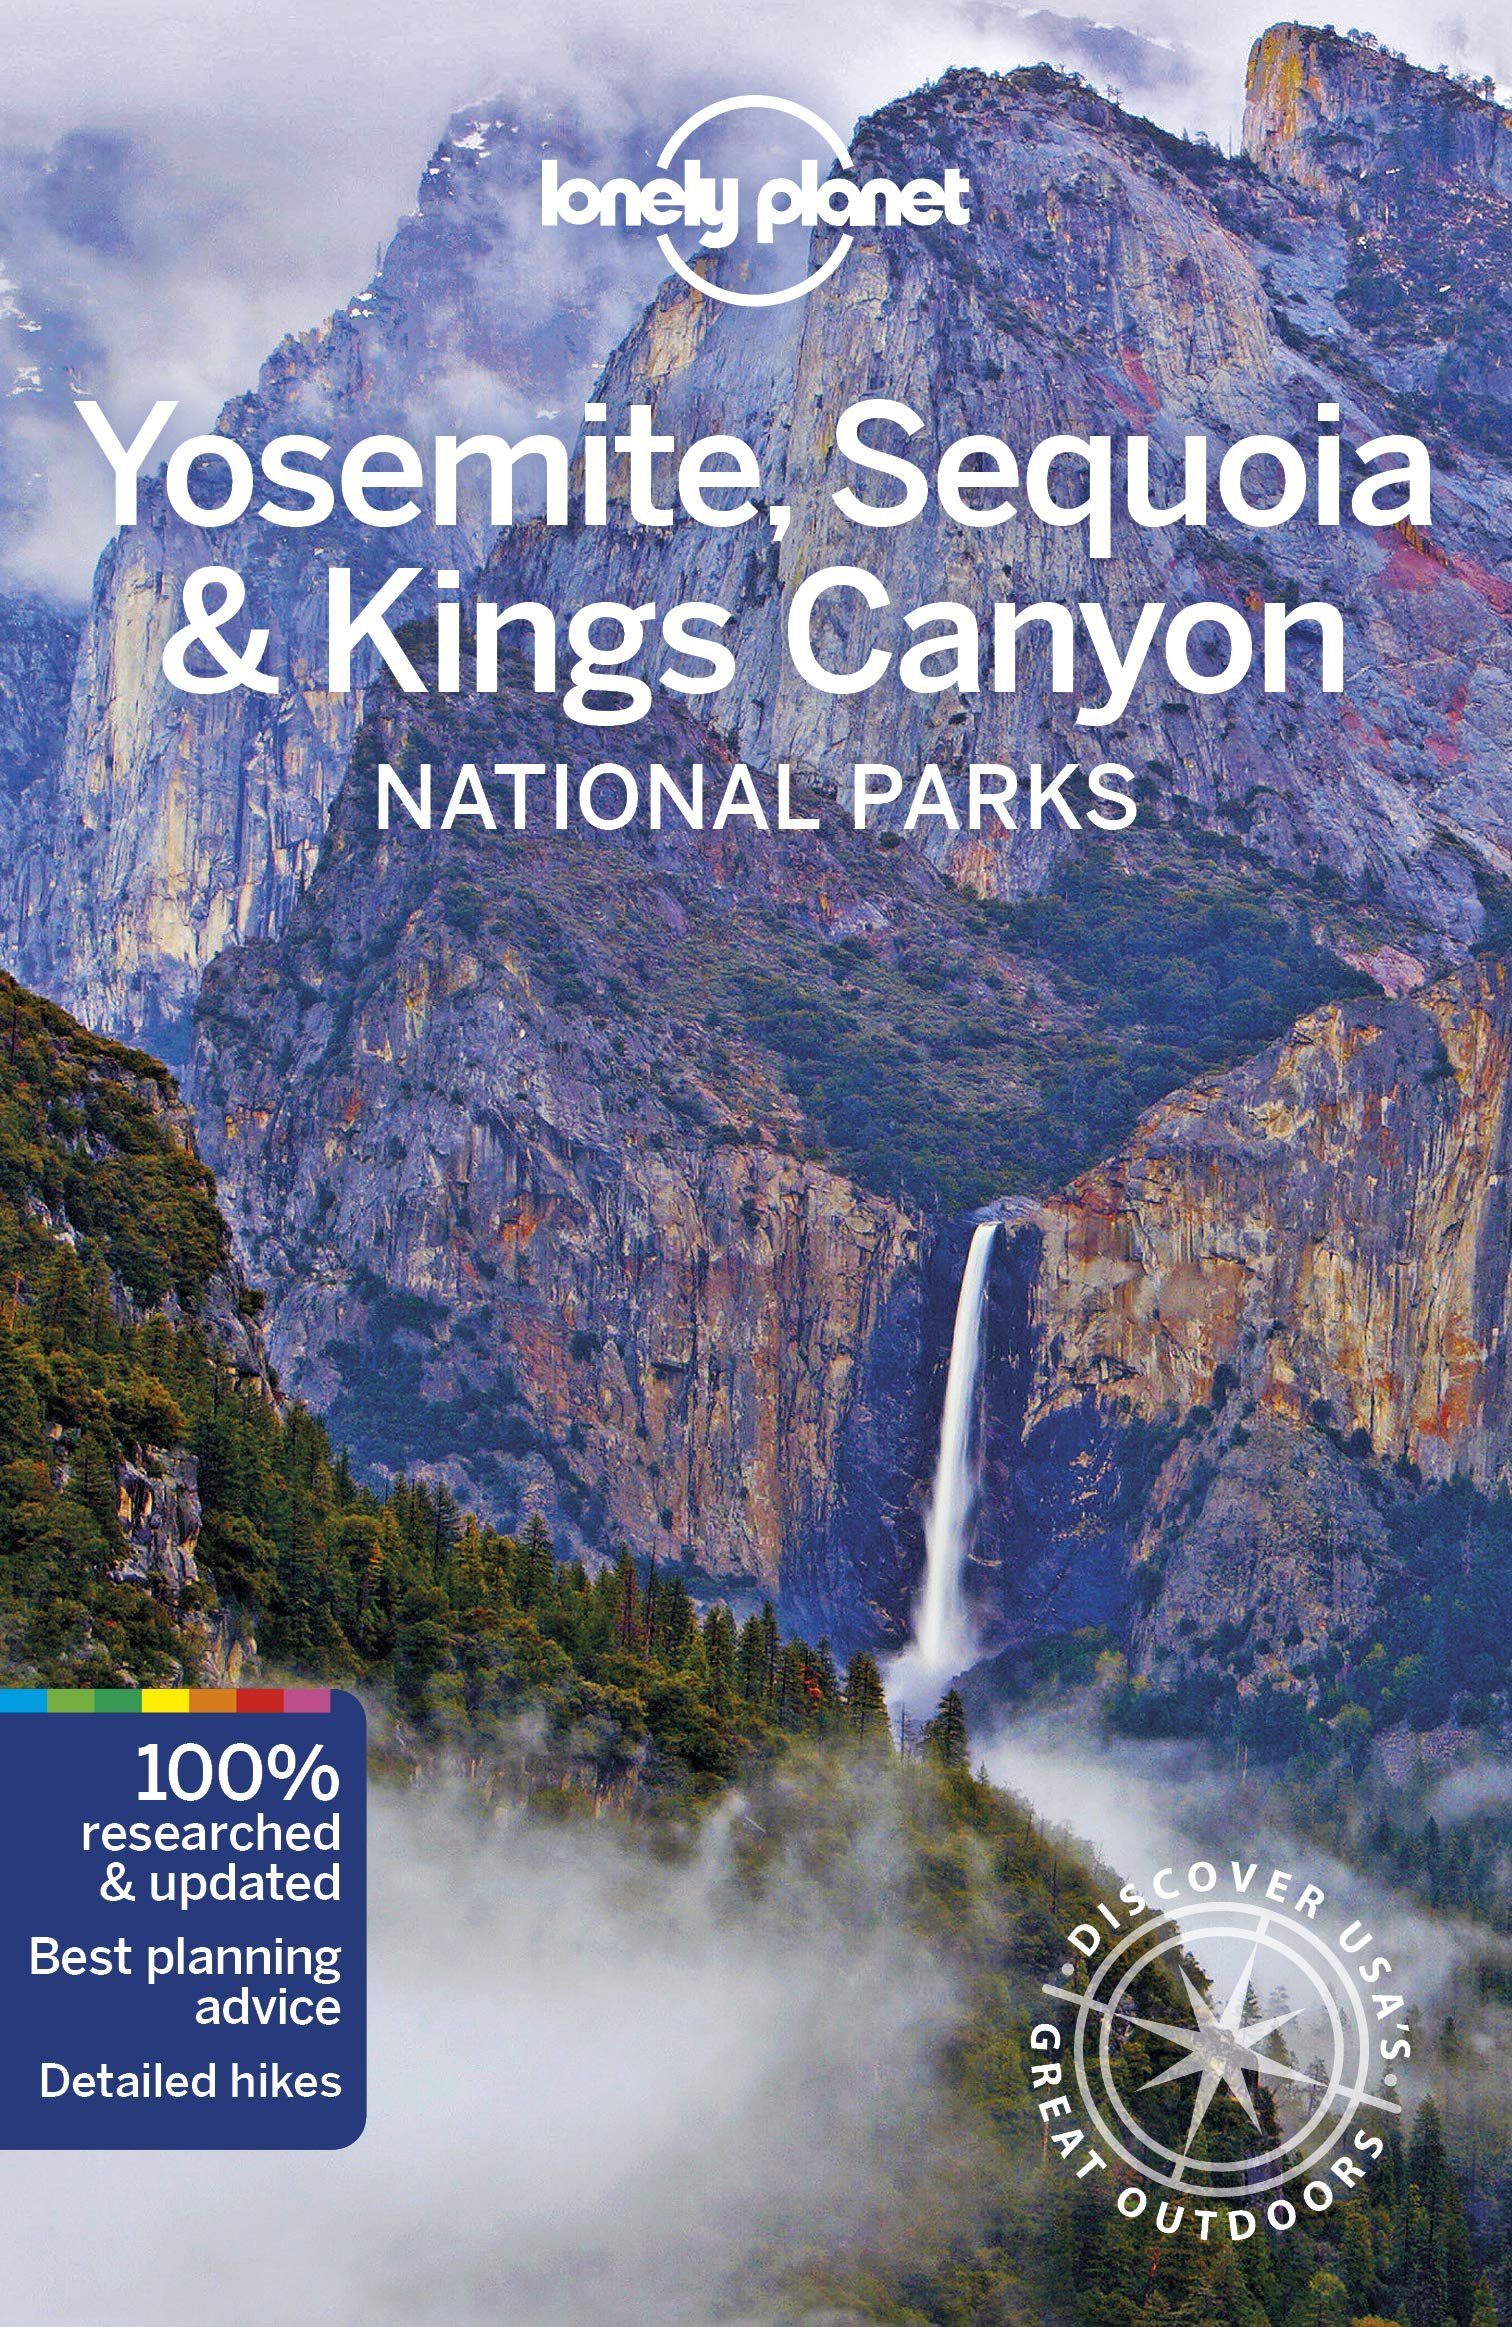 Lonely Planet Yosemite National Park Guide 9781786575951  Lonely Planet NP Guides  Reisgidsen California, Nevada